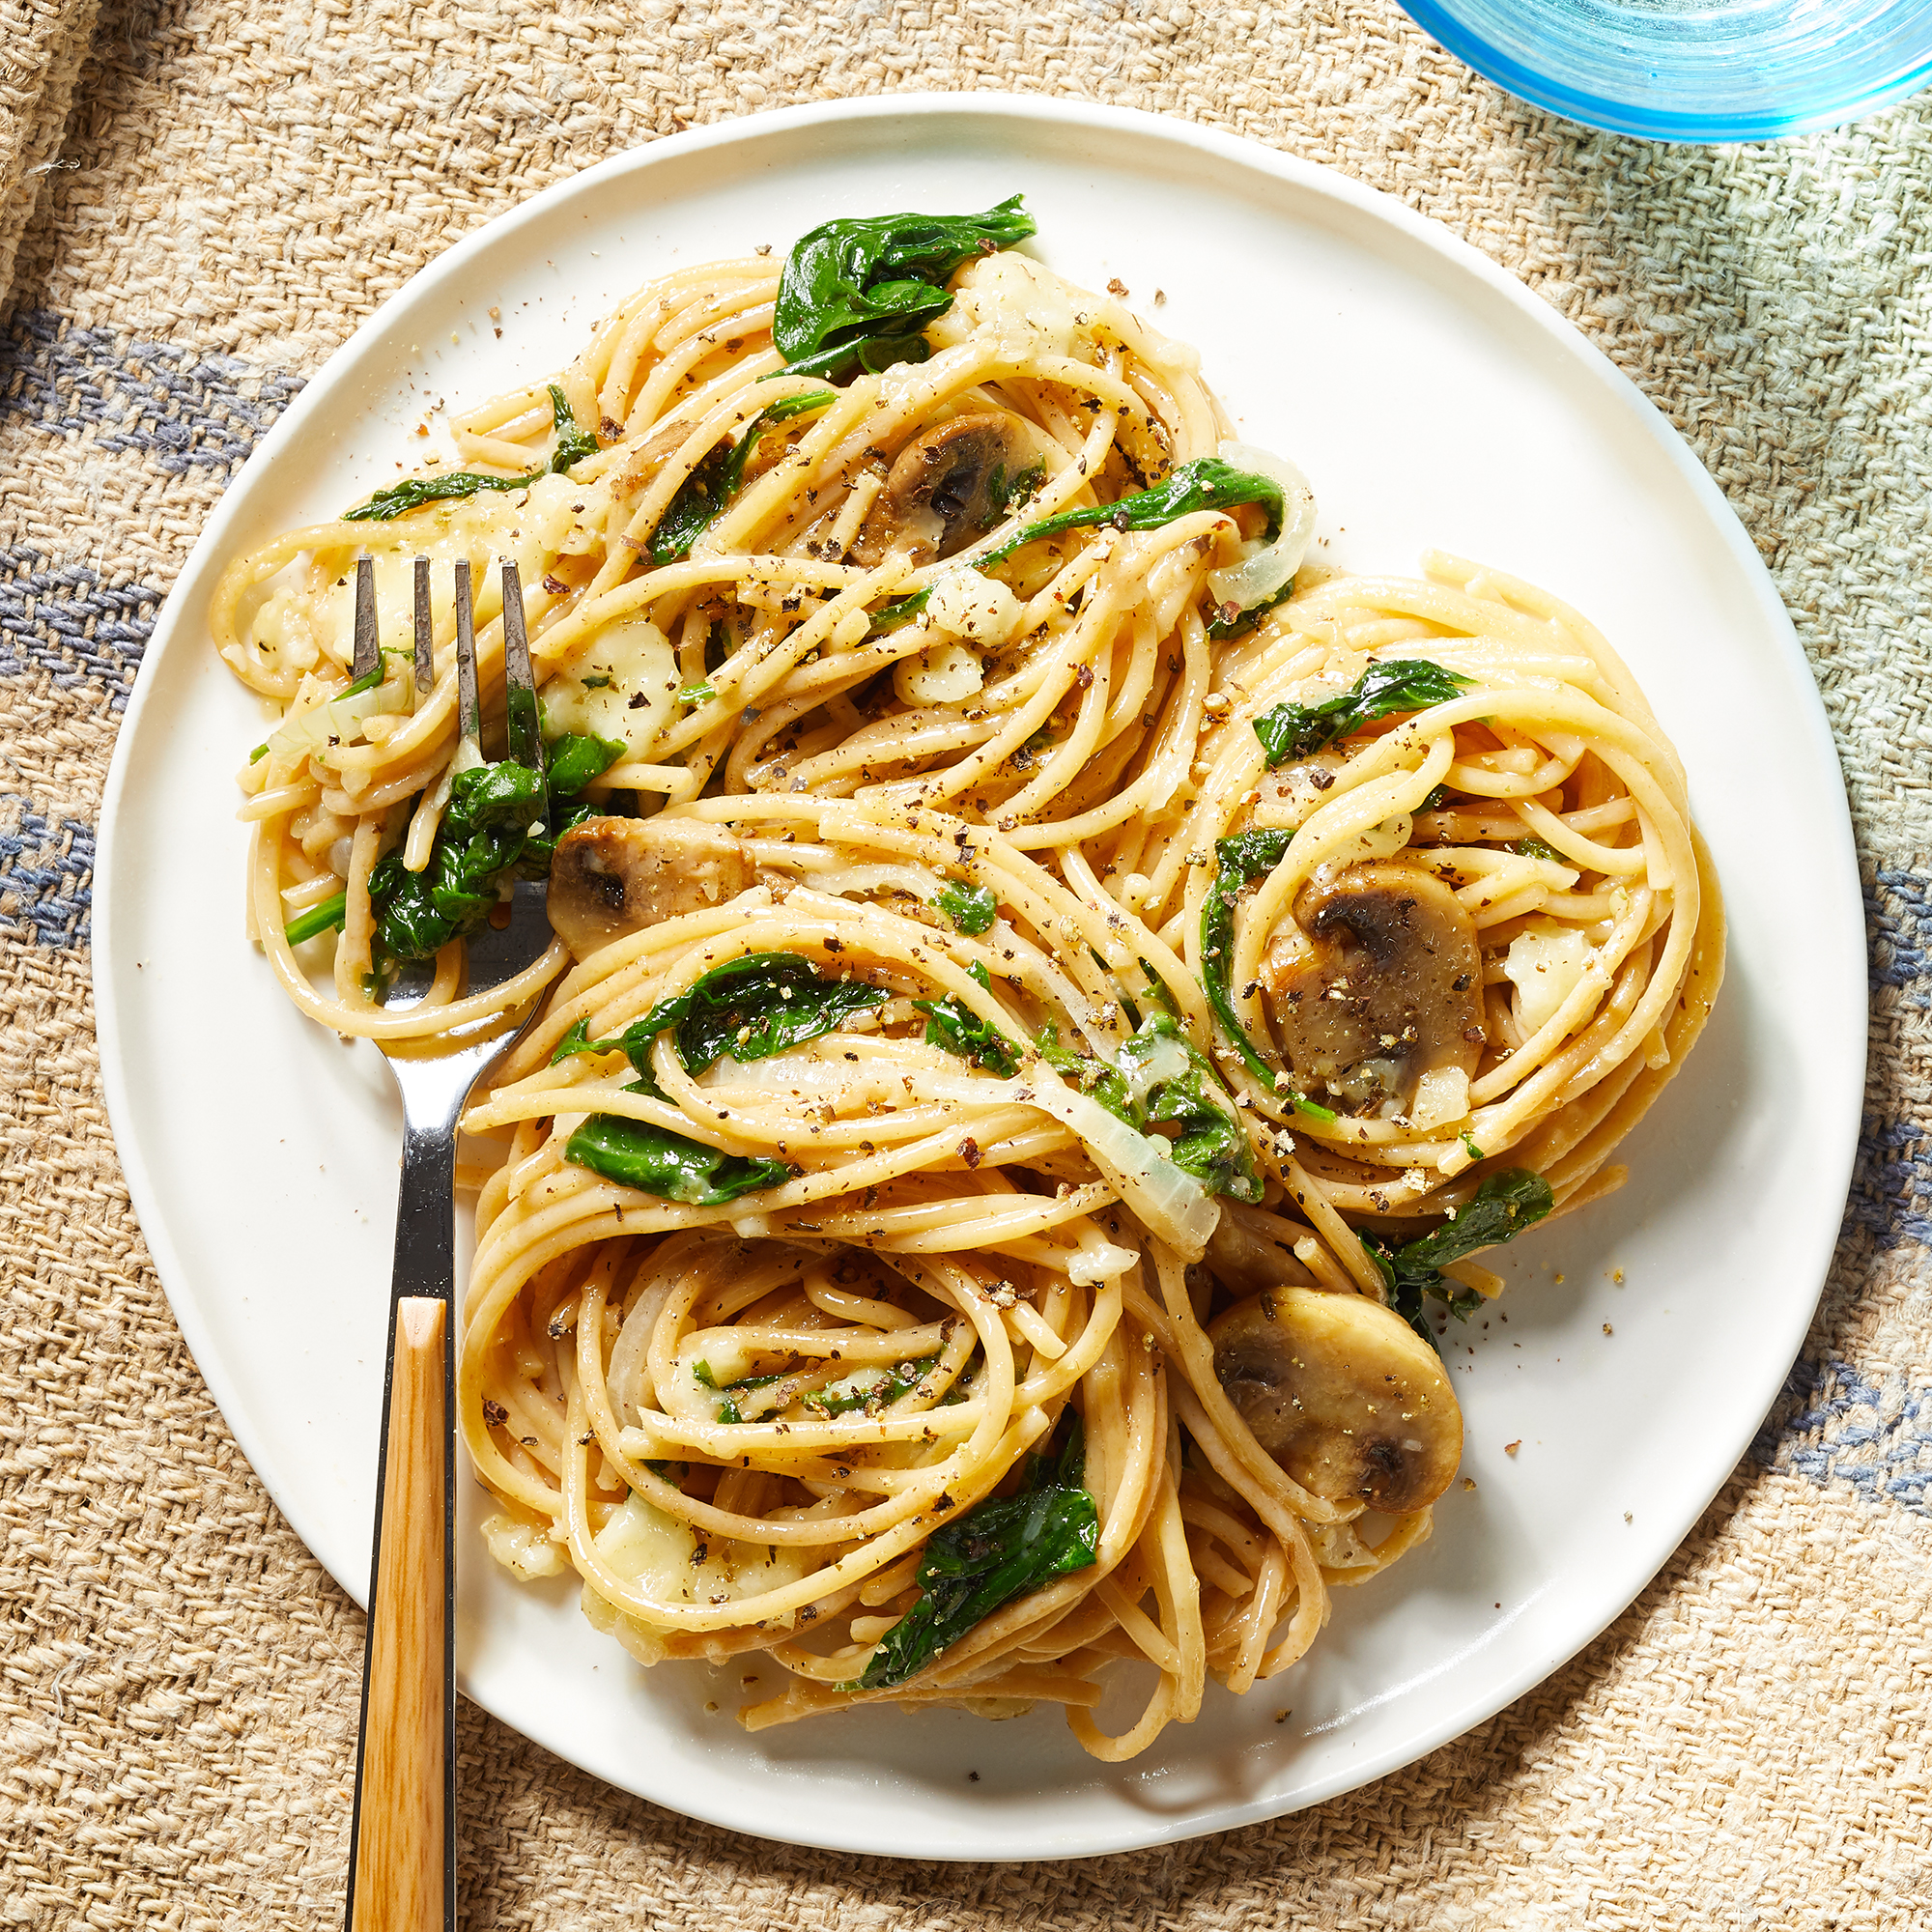 Spaghetti with Baked Brie, Mushrooms & Spinach